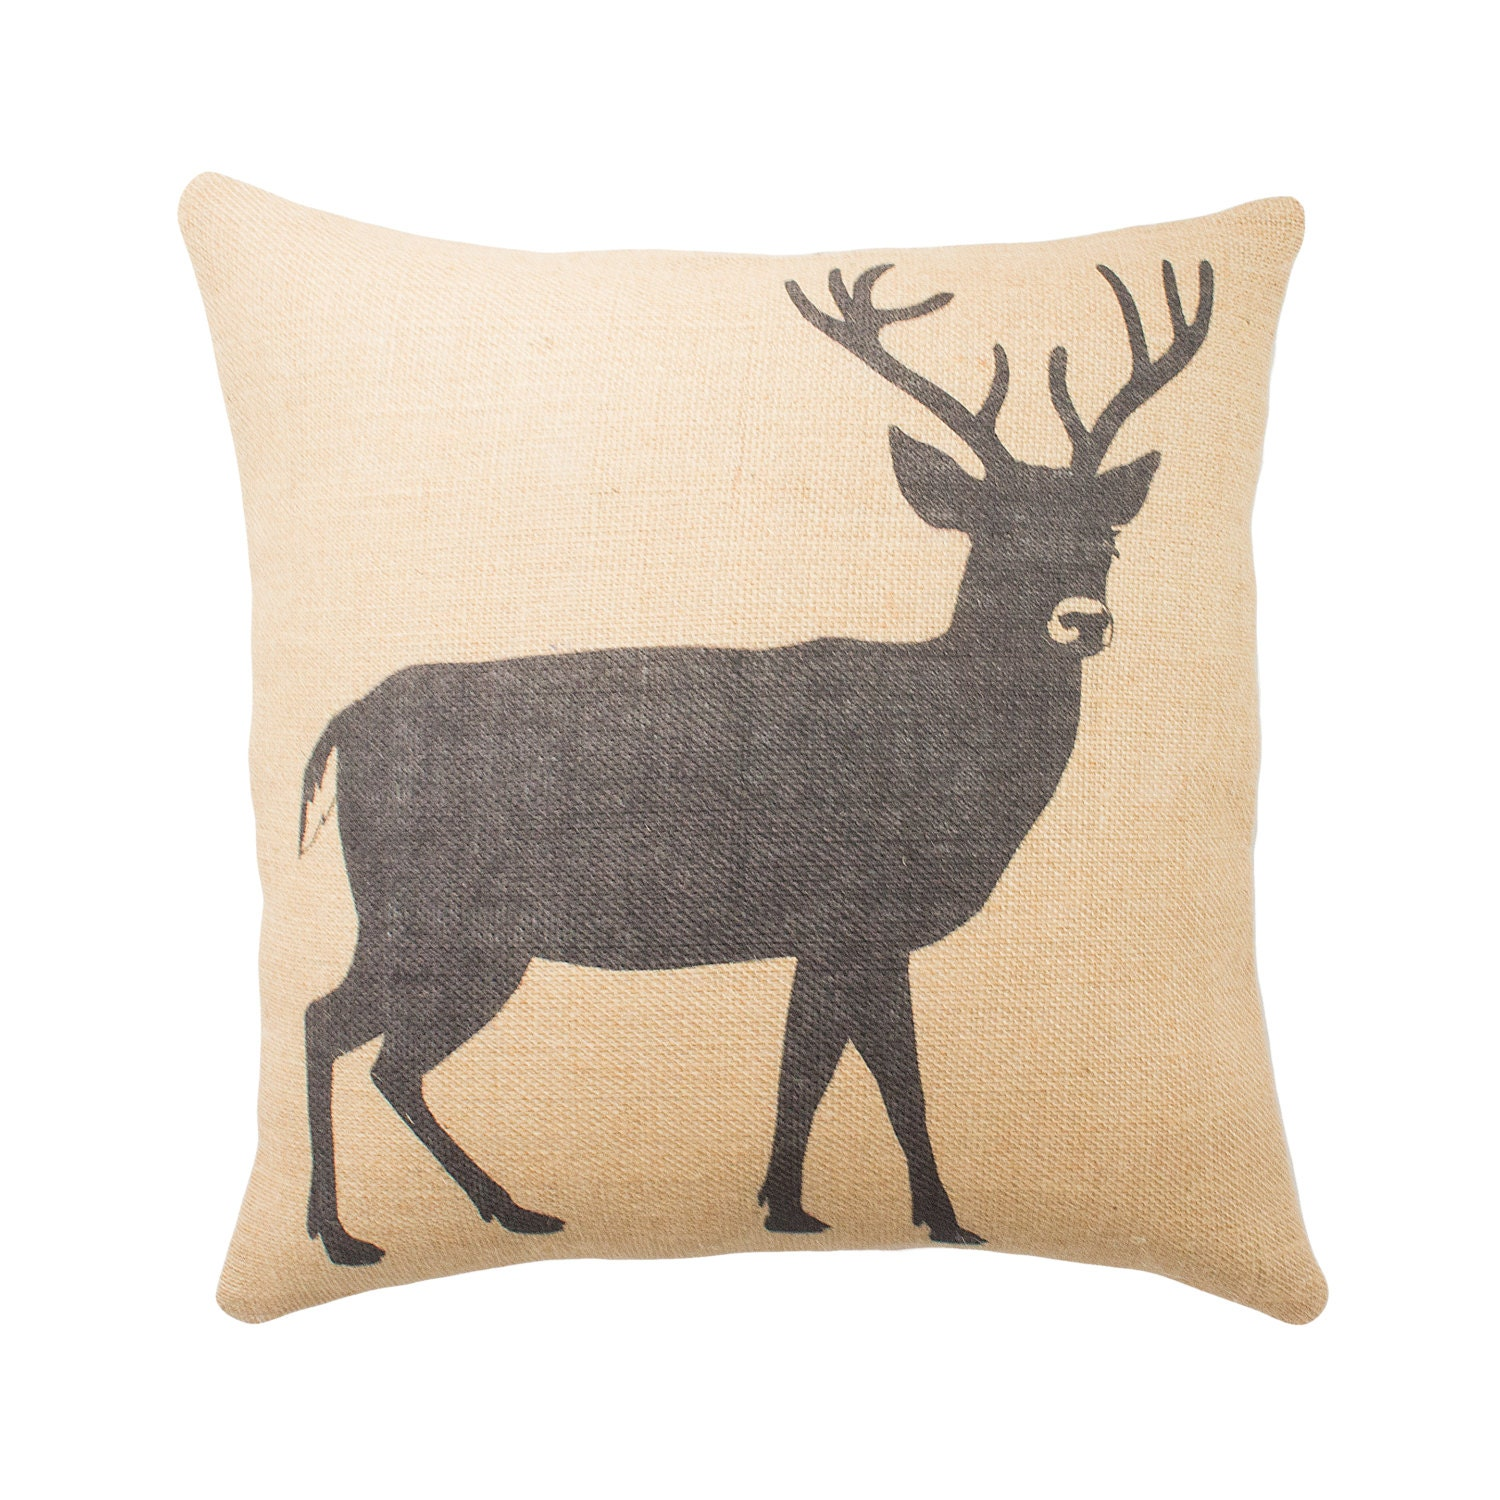 moose pillow image k wooded pillows linen profile deer river throw